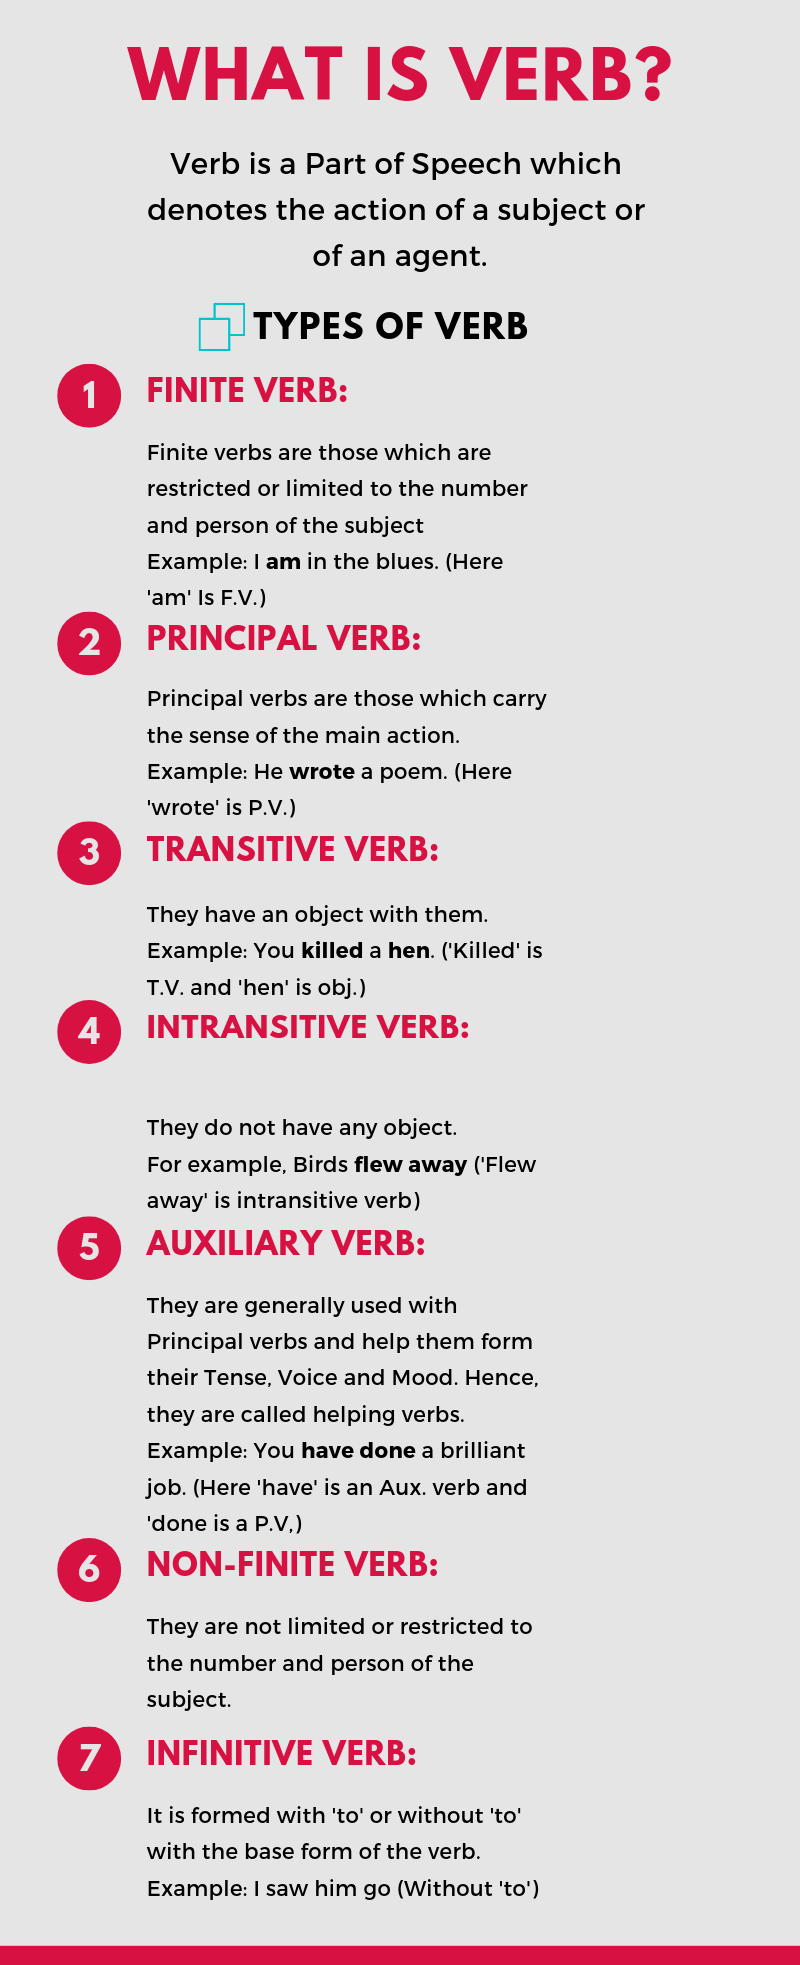 verbs-infographic